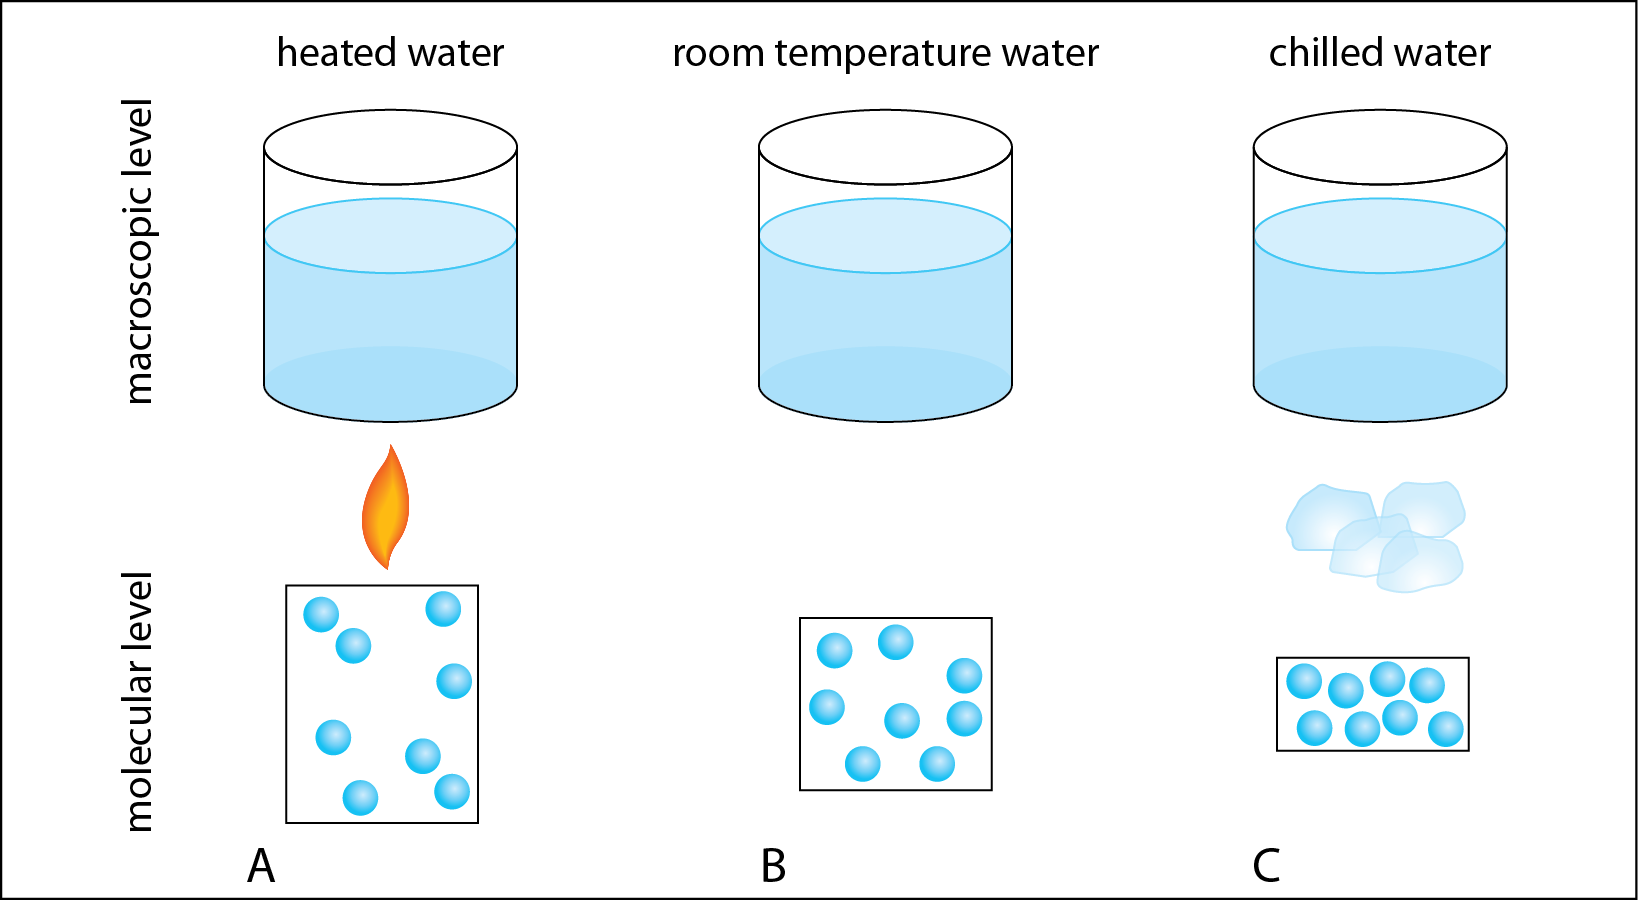 Hot clipart boiling point. Weird science macroscopic changes